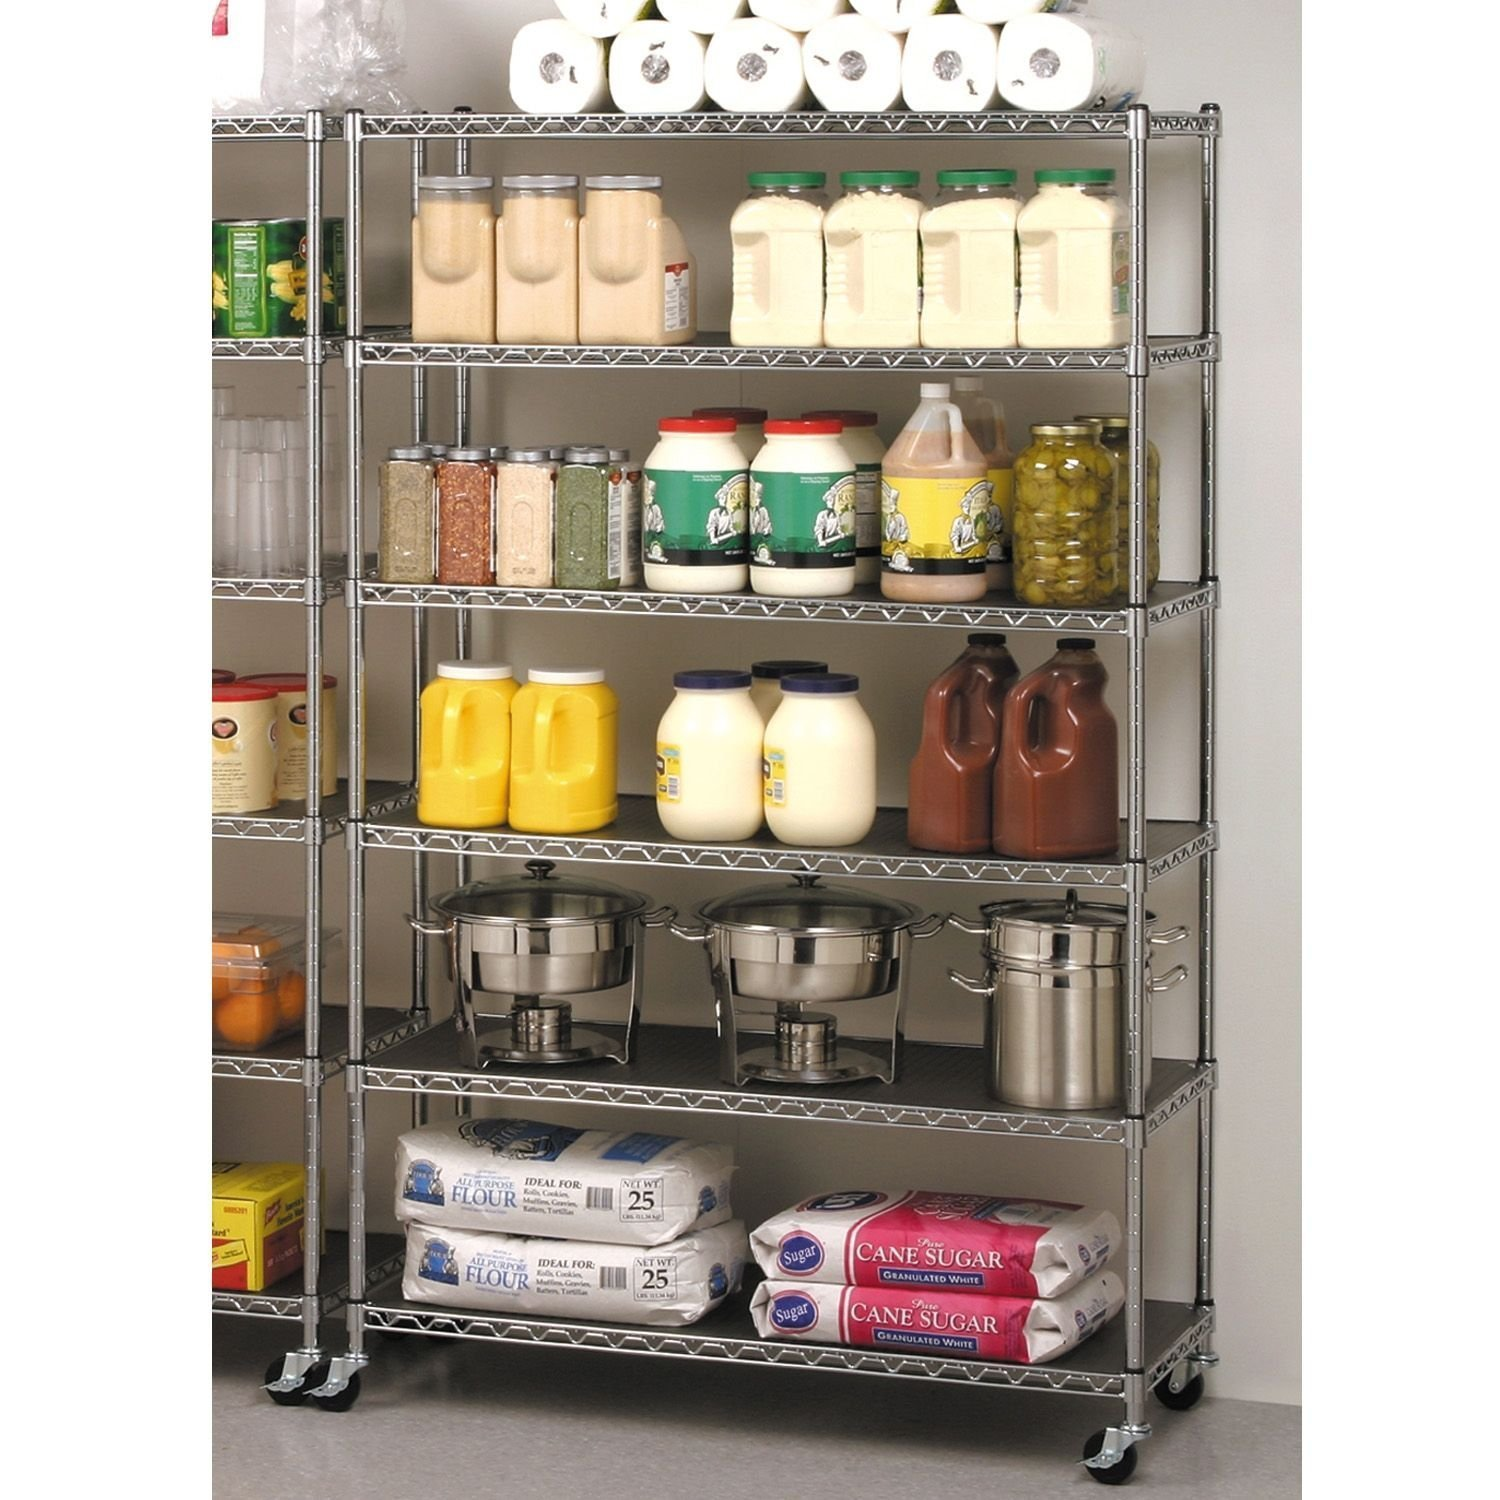 Amazon.com: Storage Shelving unit cover, fits racks 48